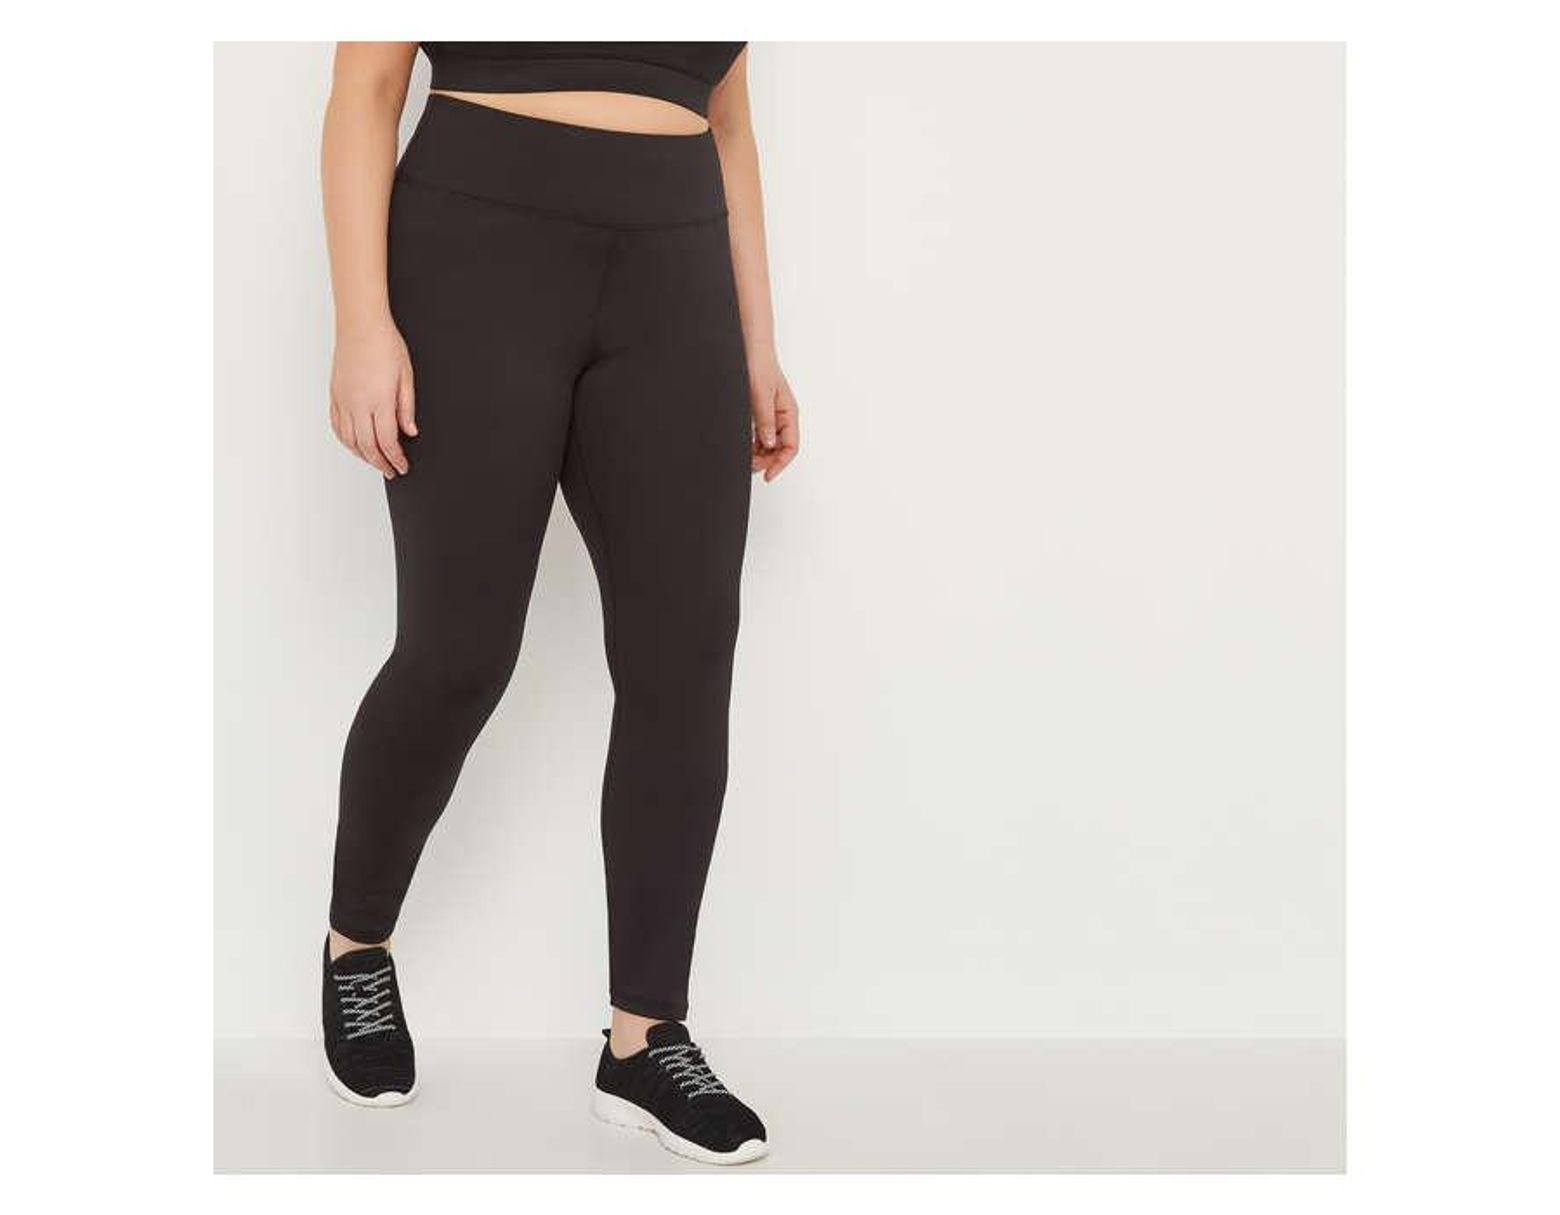 b1c38d878a524 Joe Fresh Women+ Active Legging in Black - Lyst